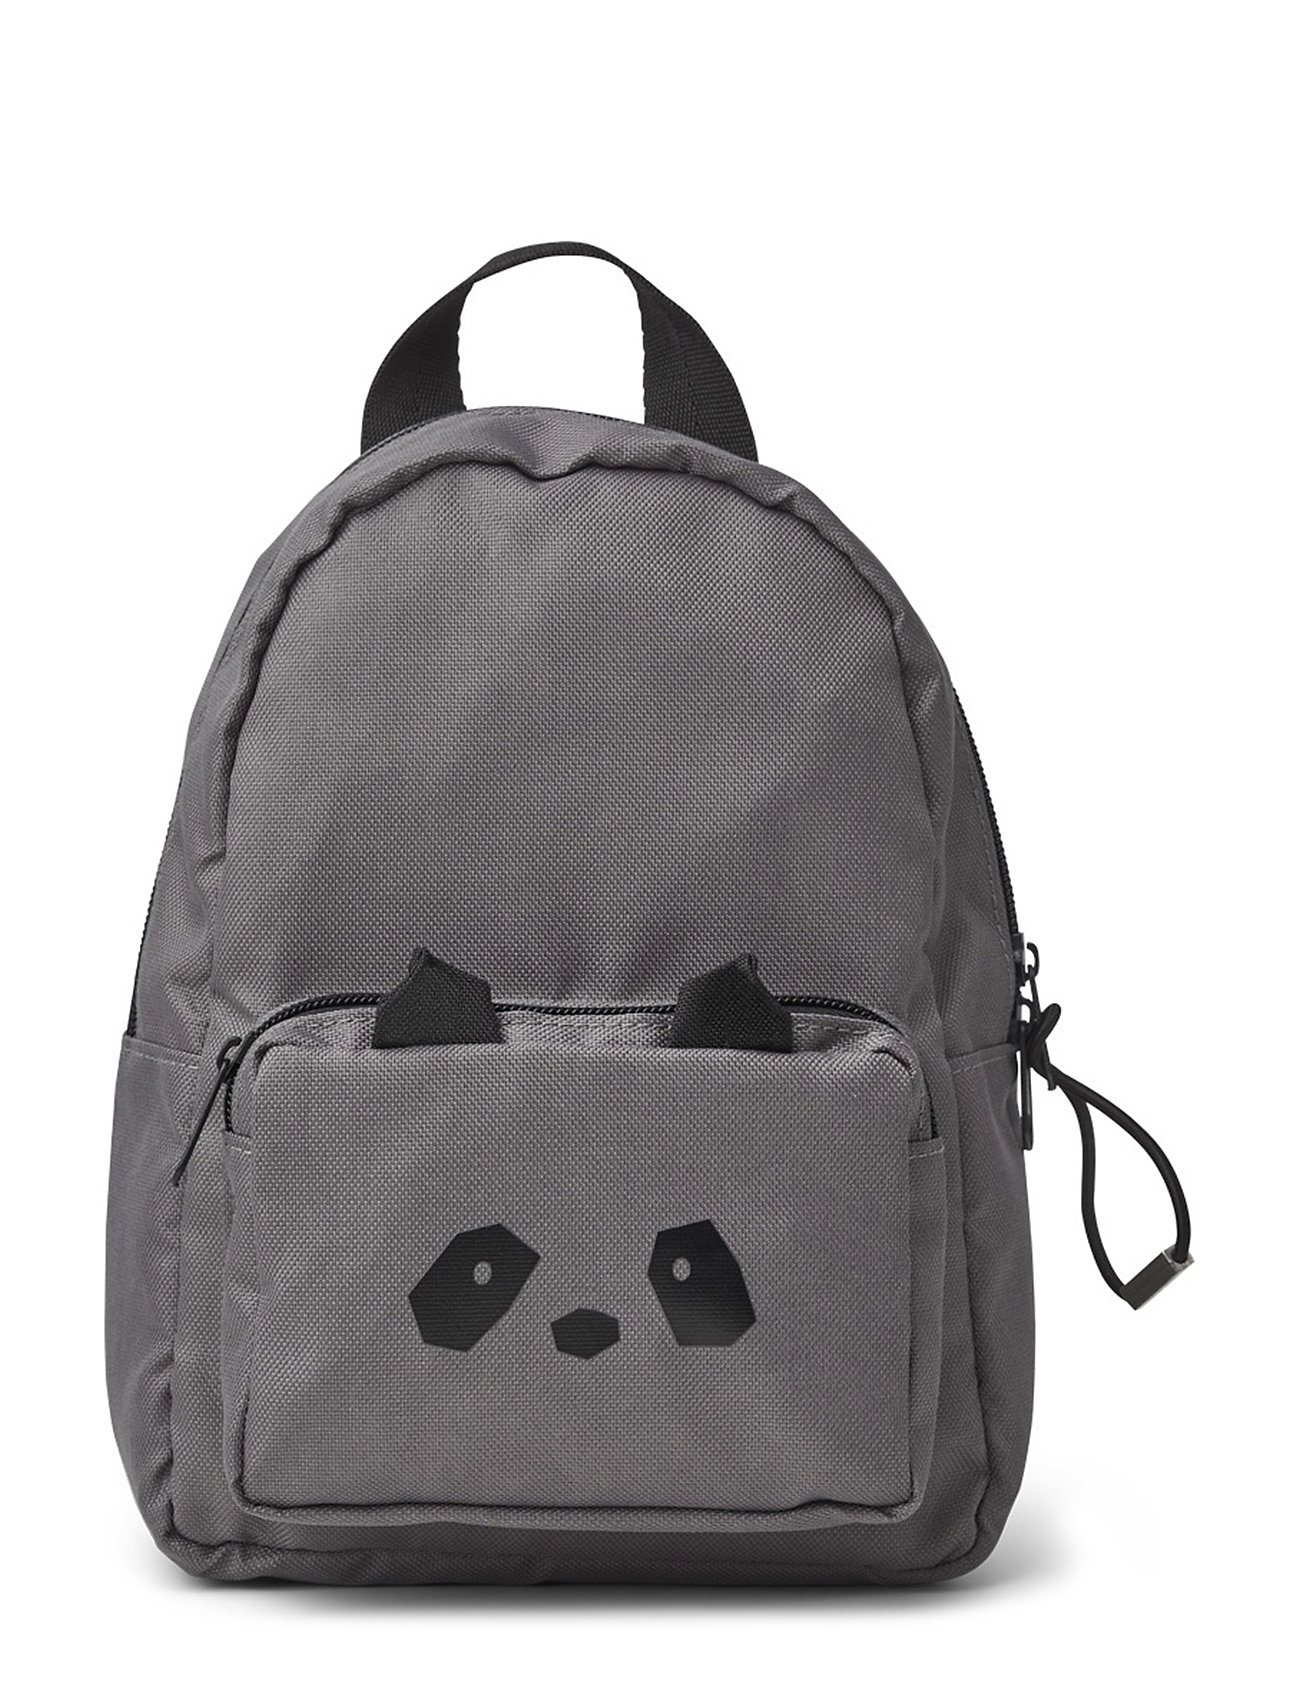 Liewood Saxo mini backpack - PANDA STONE GREY